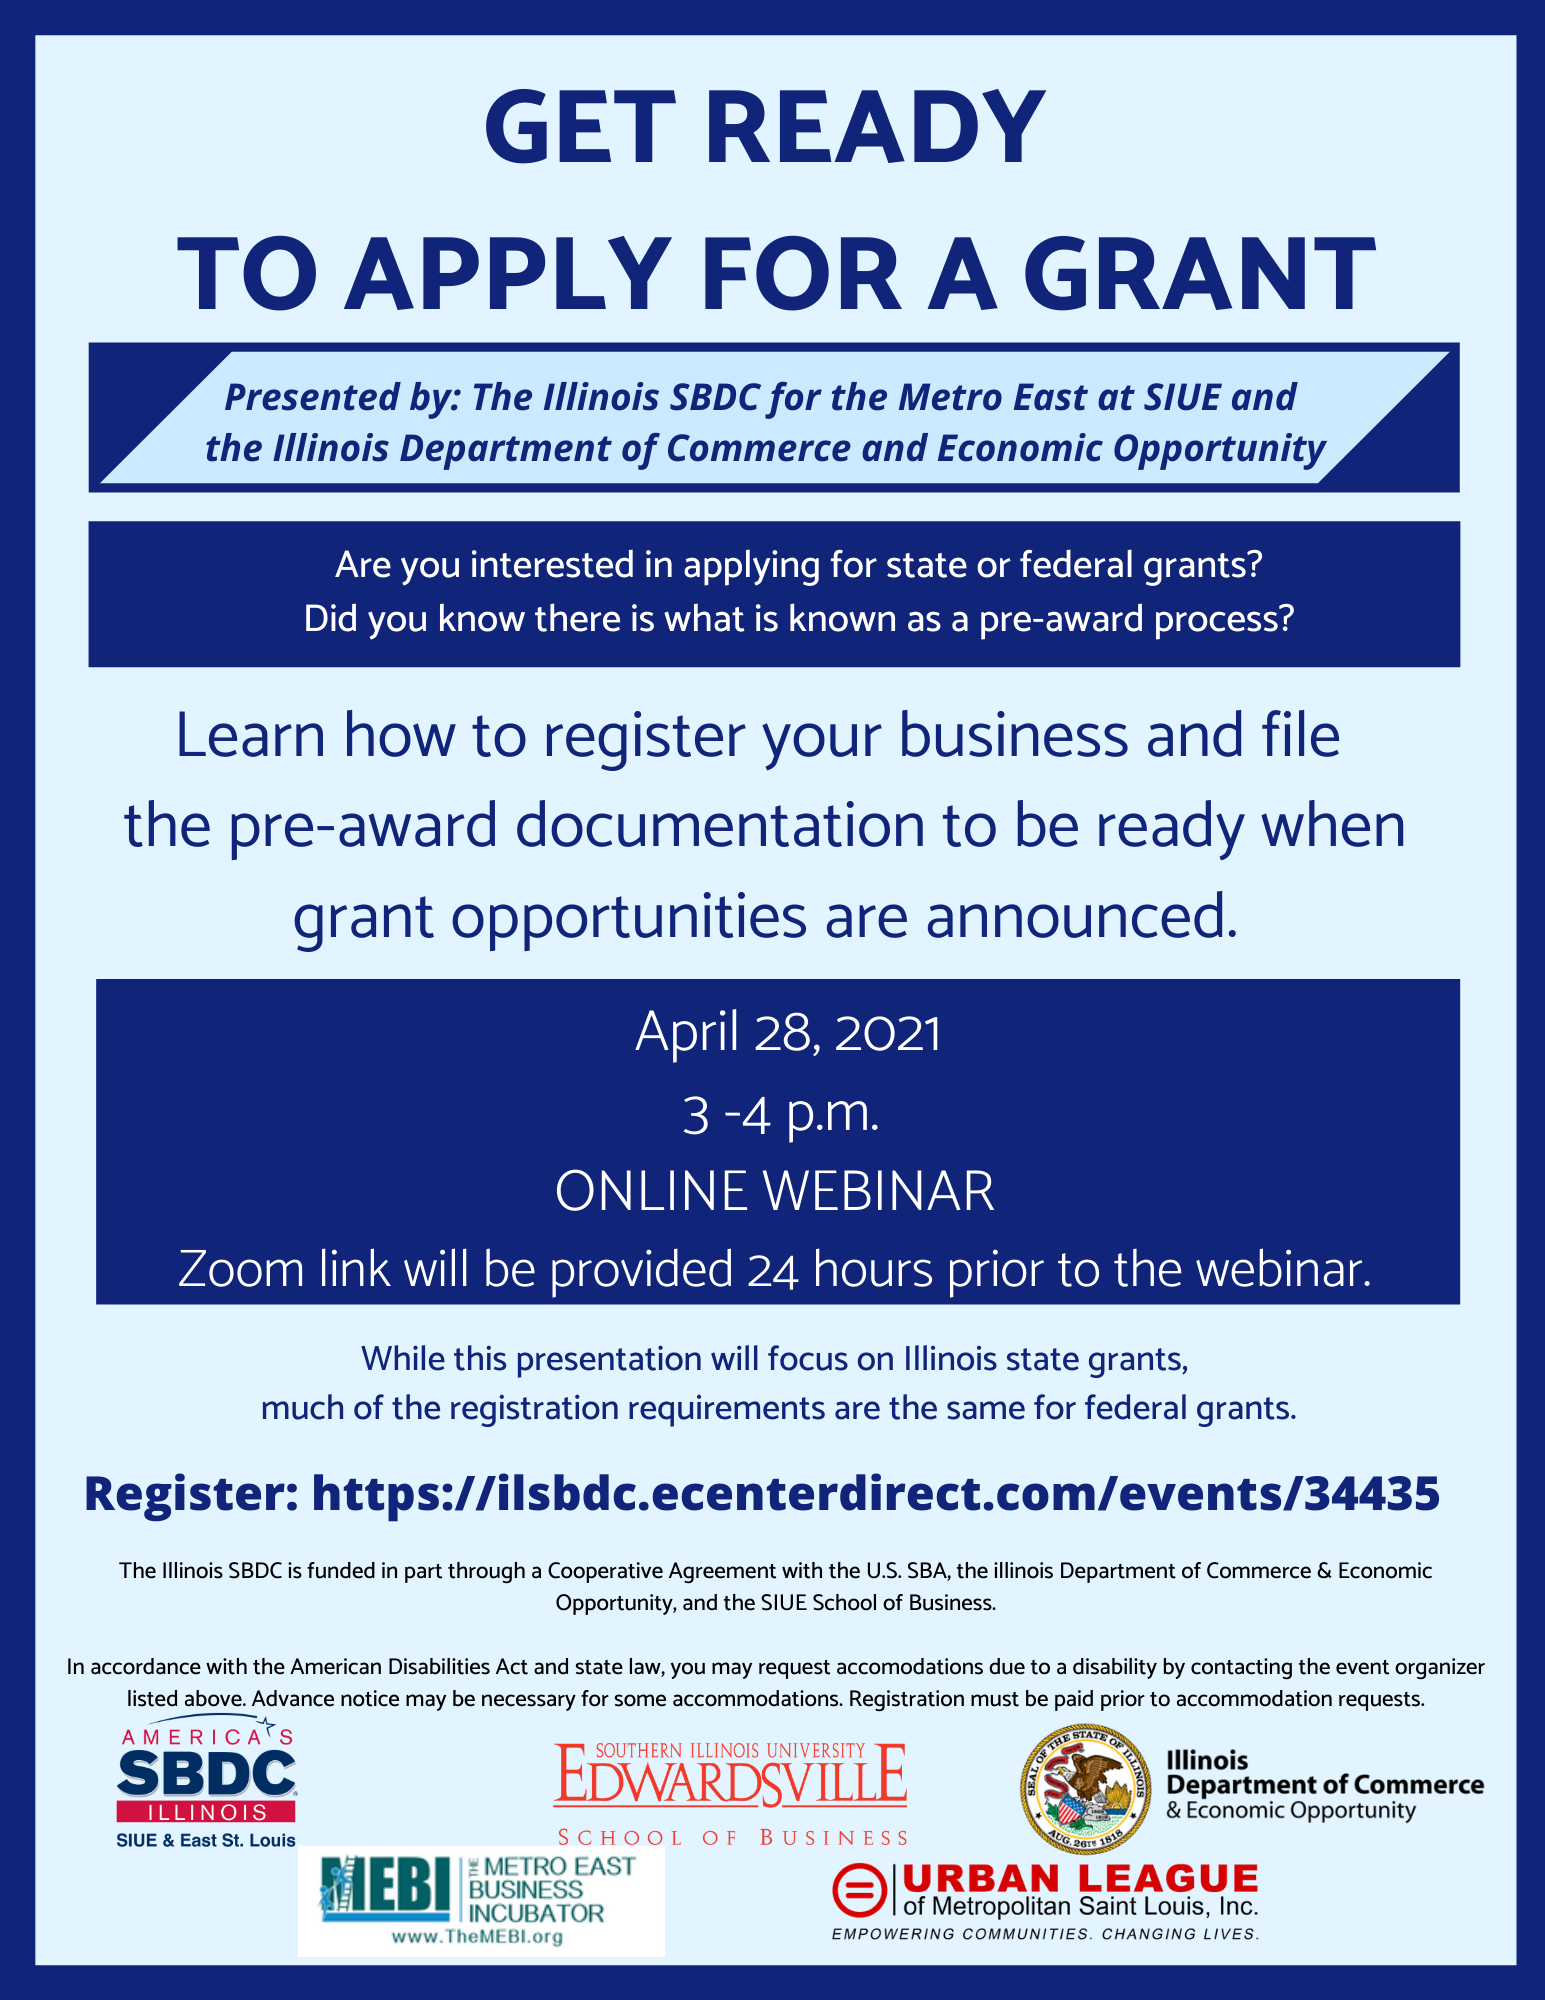 Get Ready to Apply for a Grant